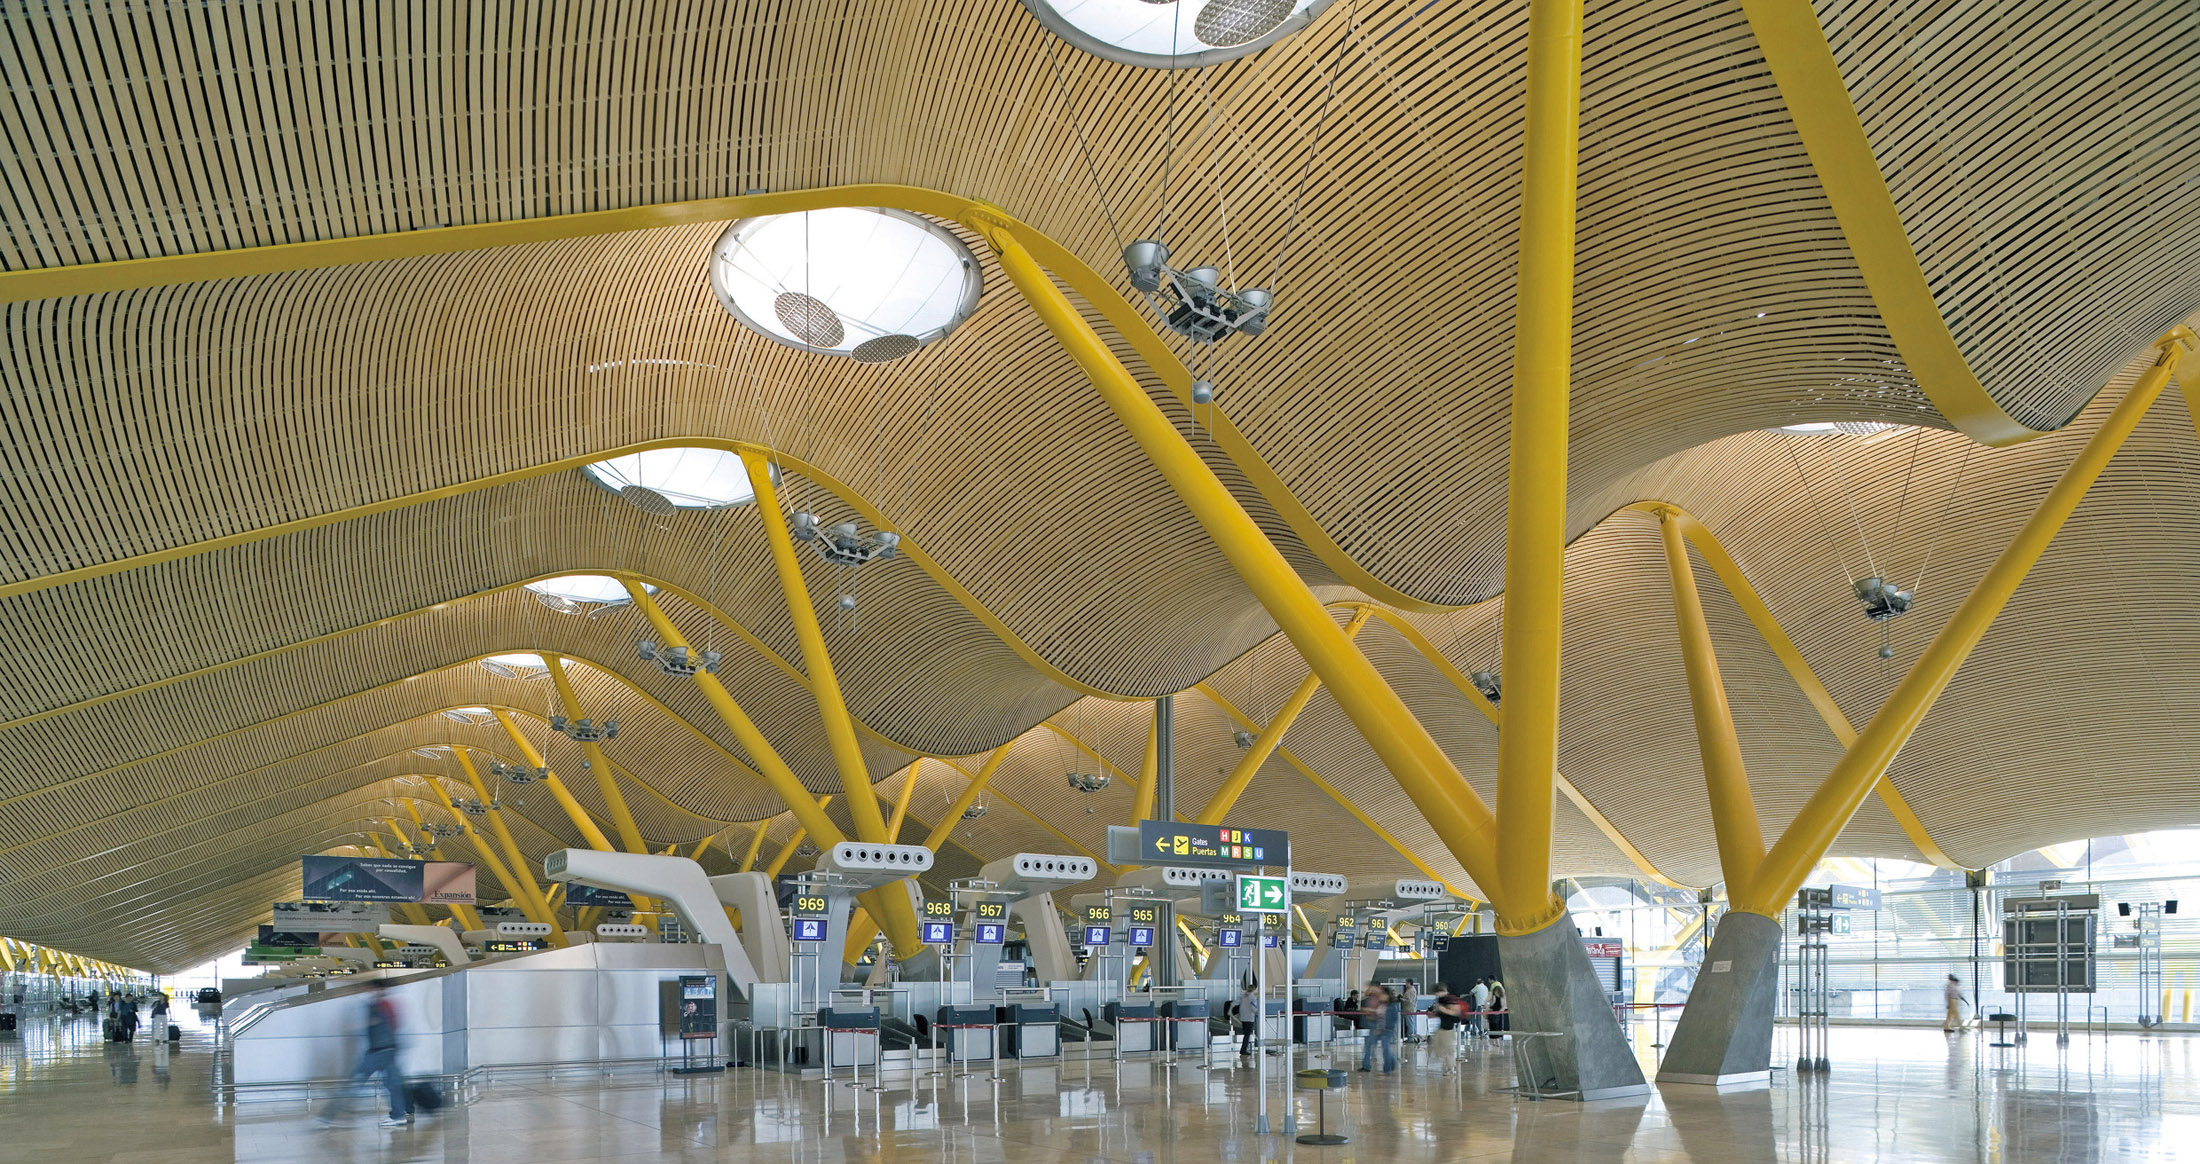 Interior of an undulating airport